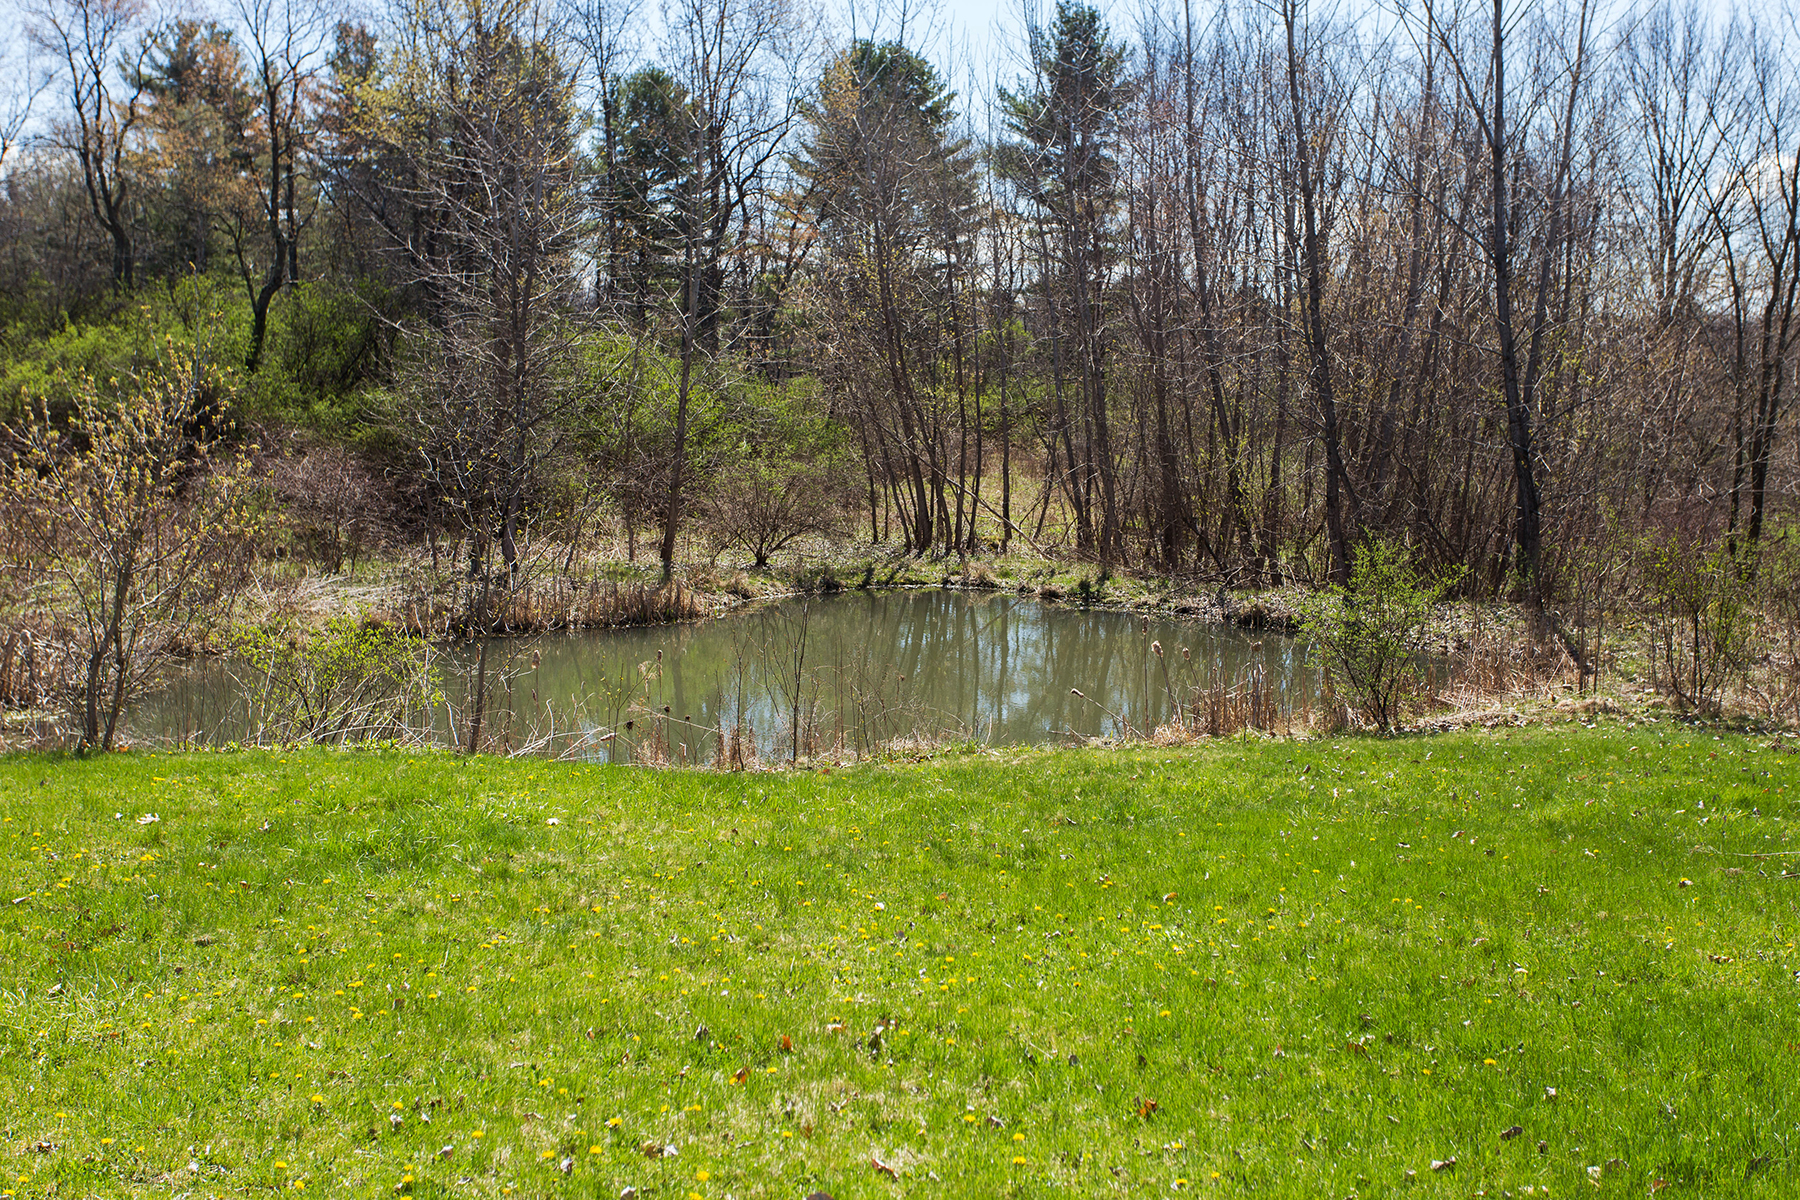 Land for Sale at 2618R State Route 40, Greenwich, NY 12834 2618R State Route 40 Greenwich, New York 12834 United States